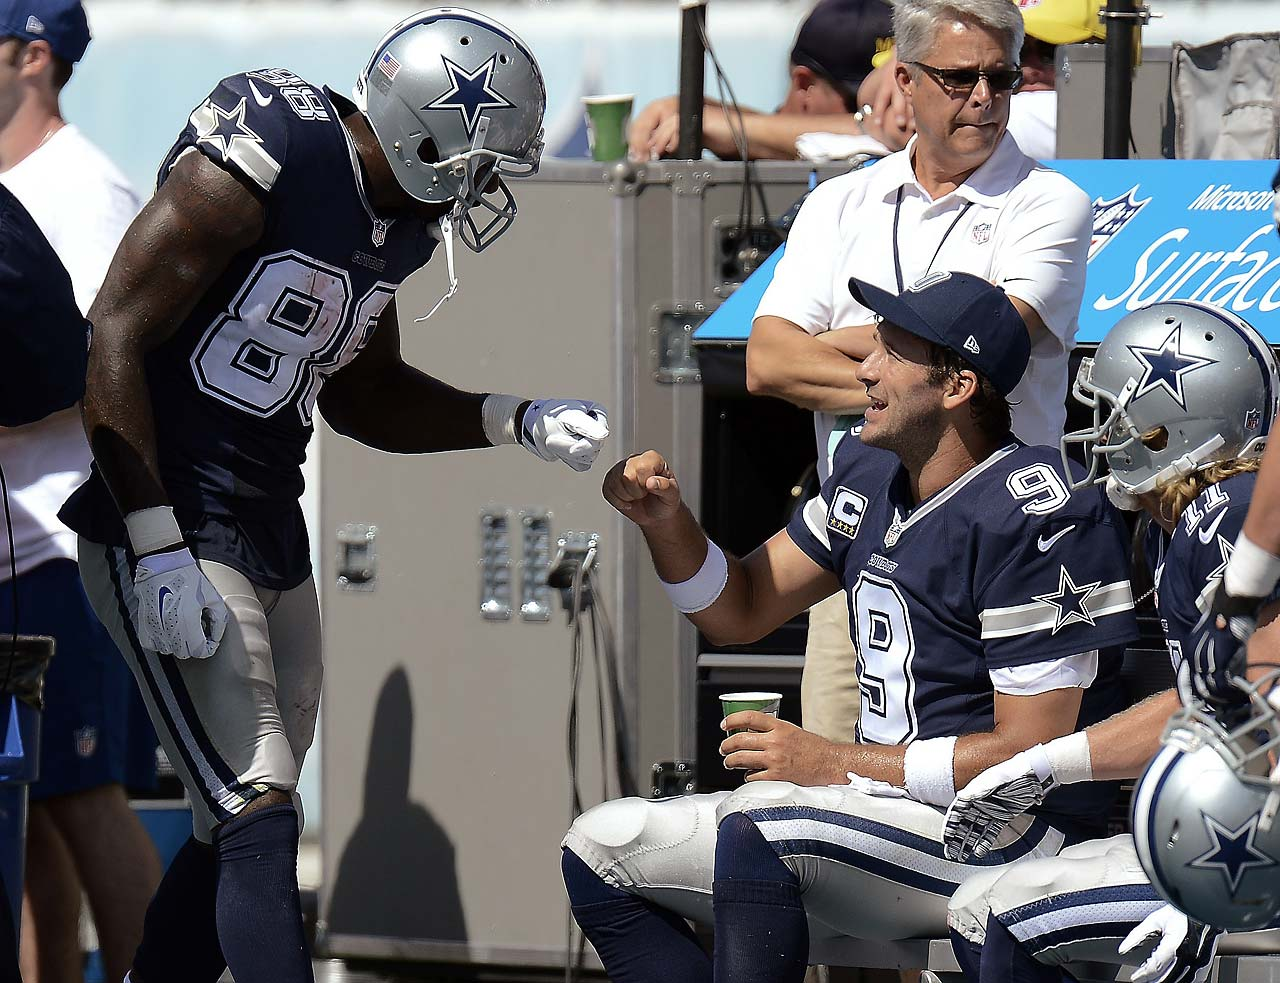 Dallas Cowboys quarterback Tony Romo and wide receiver Dez Bryant celebrate after they connected on a three-yard touchdown pass.